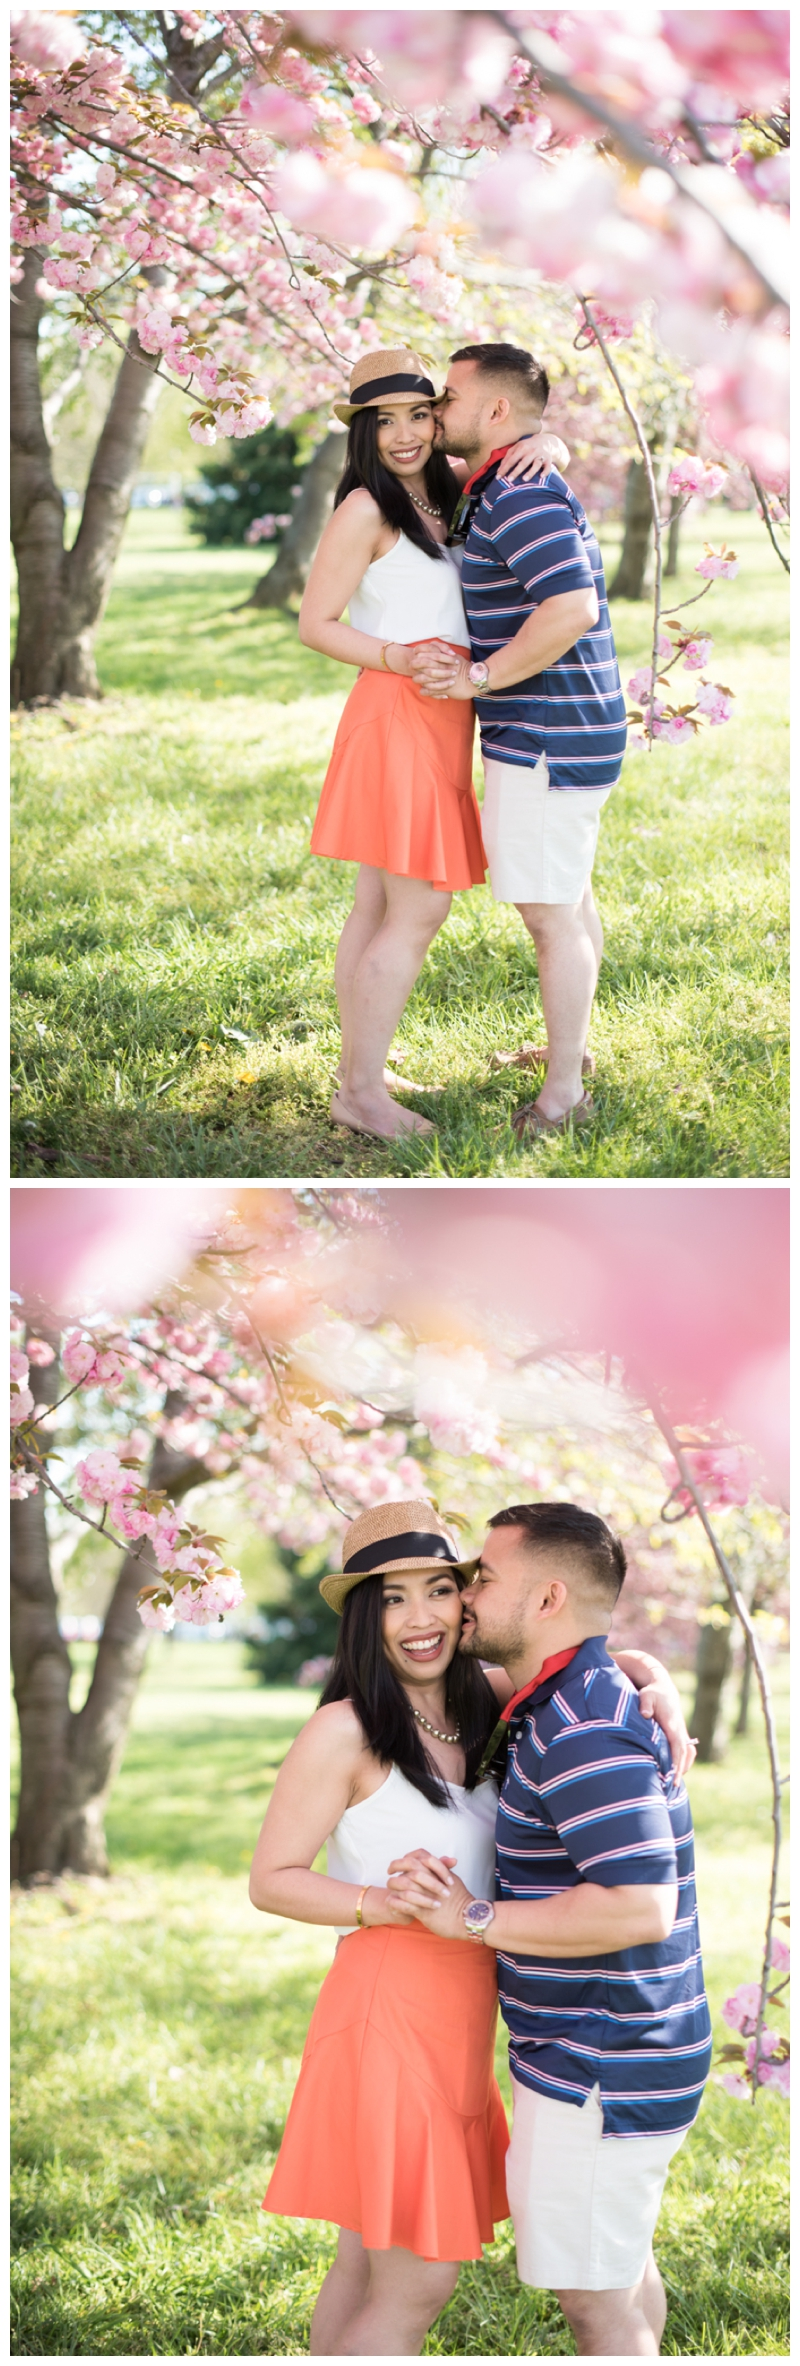 Engagement Session in Washington DC by Rachael Foster Photography_0023.jpg